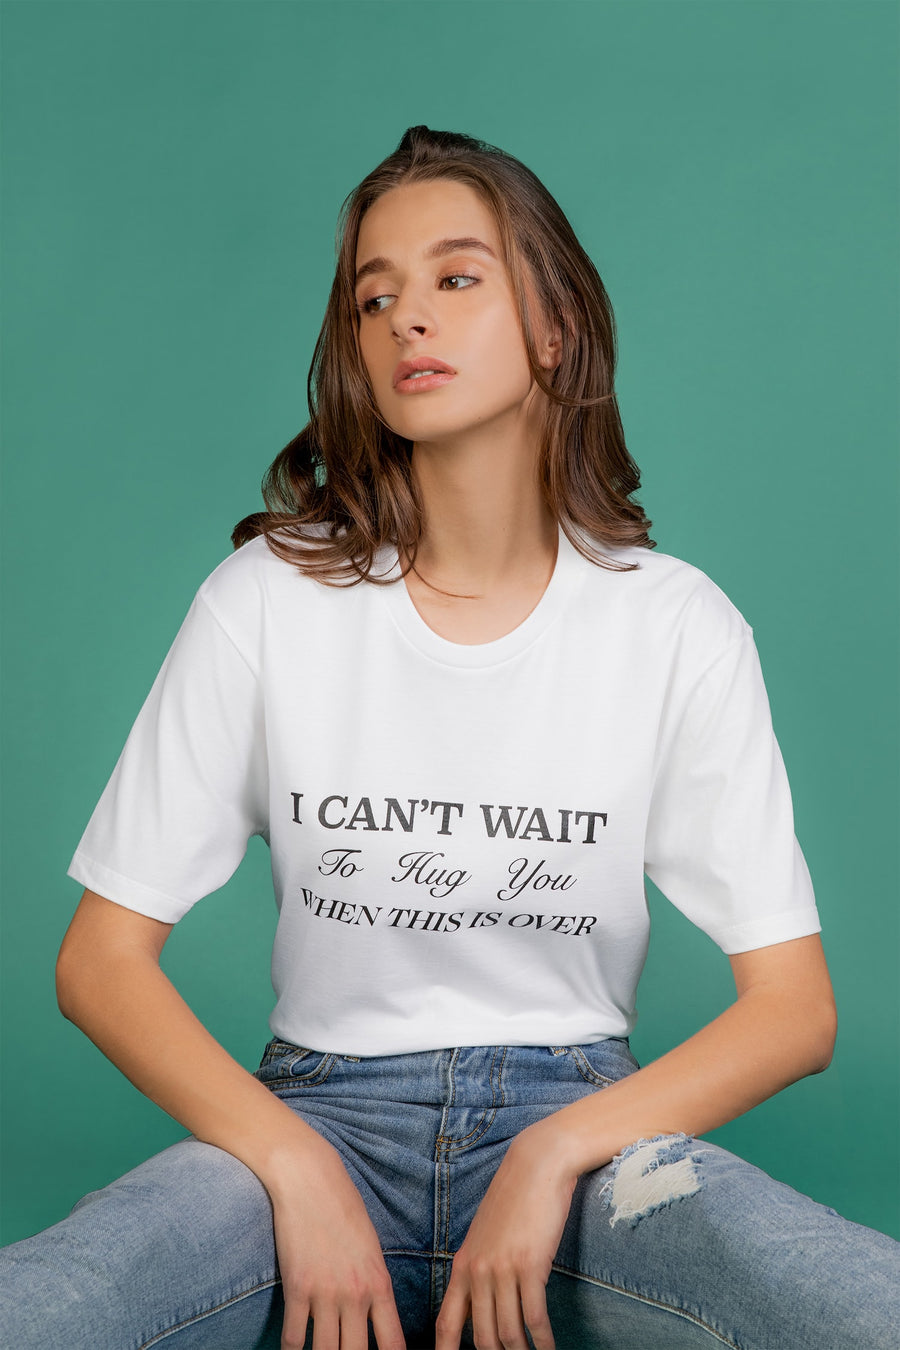 I can't wait to hug you T-Shirt